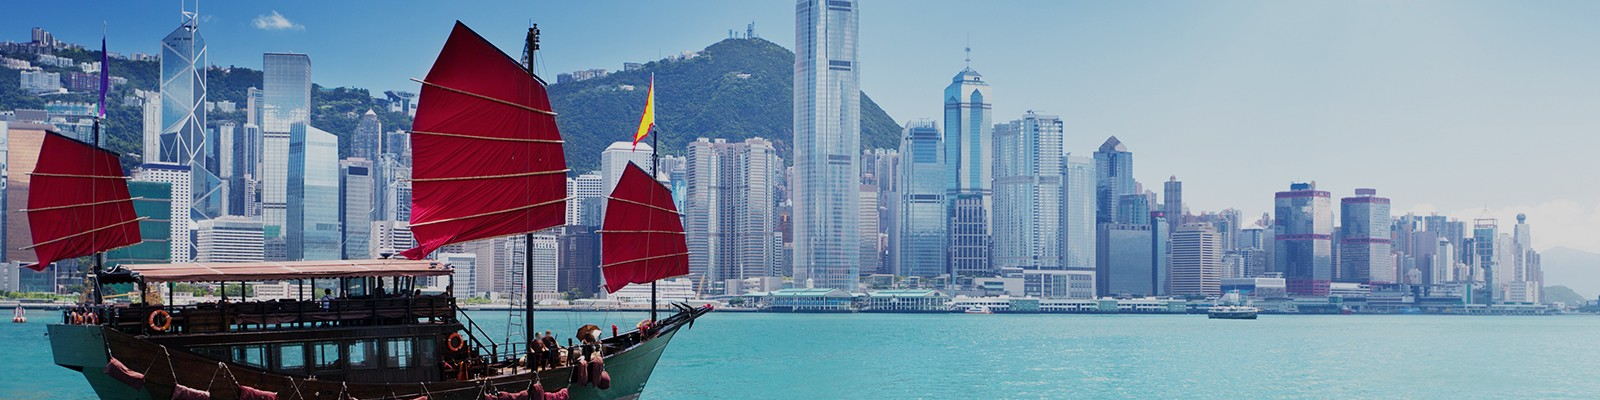 hong kong honeymoon packages header